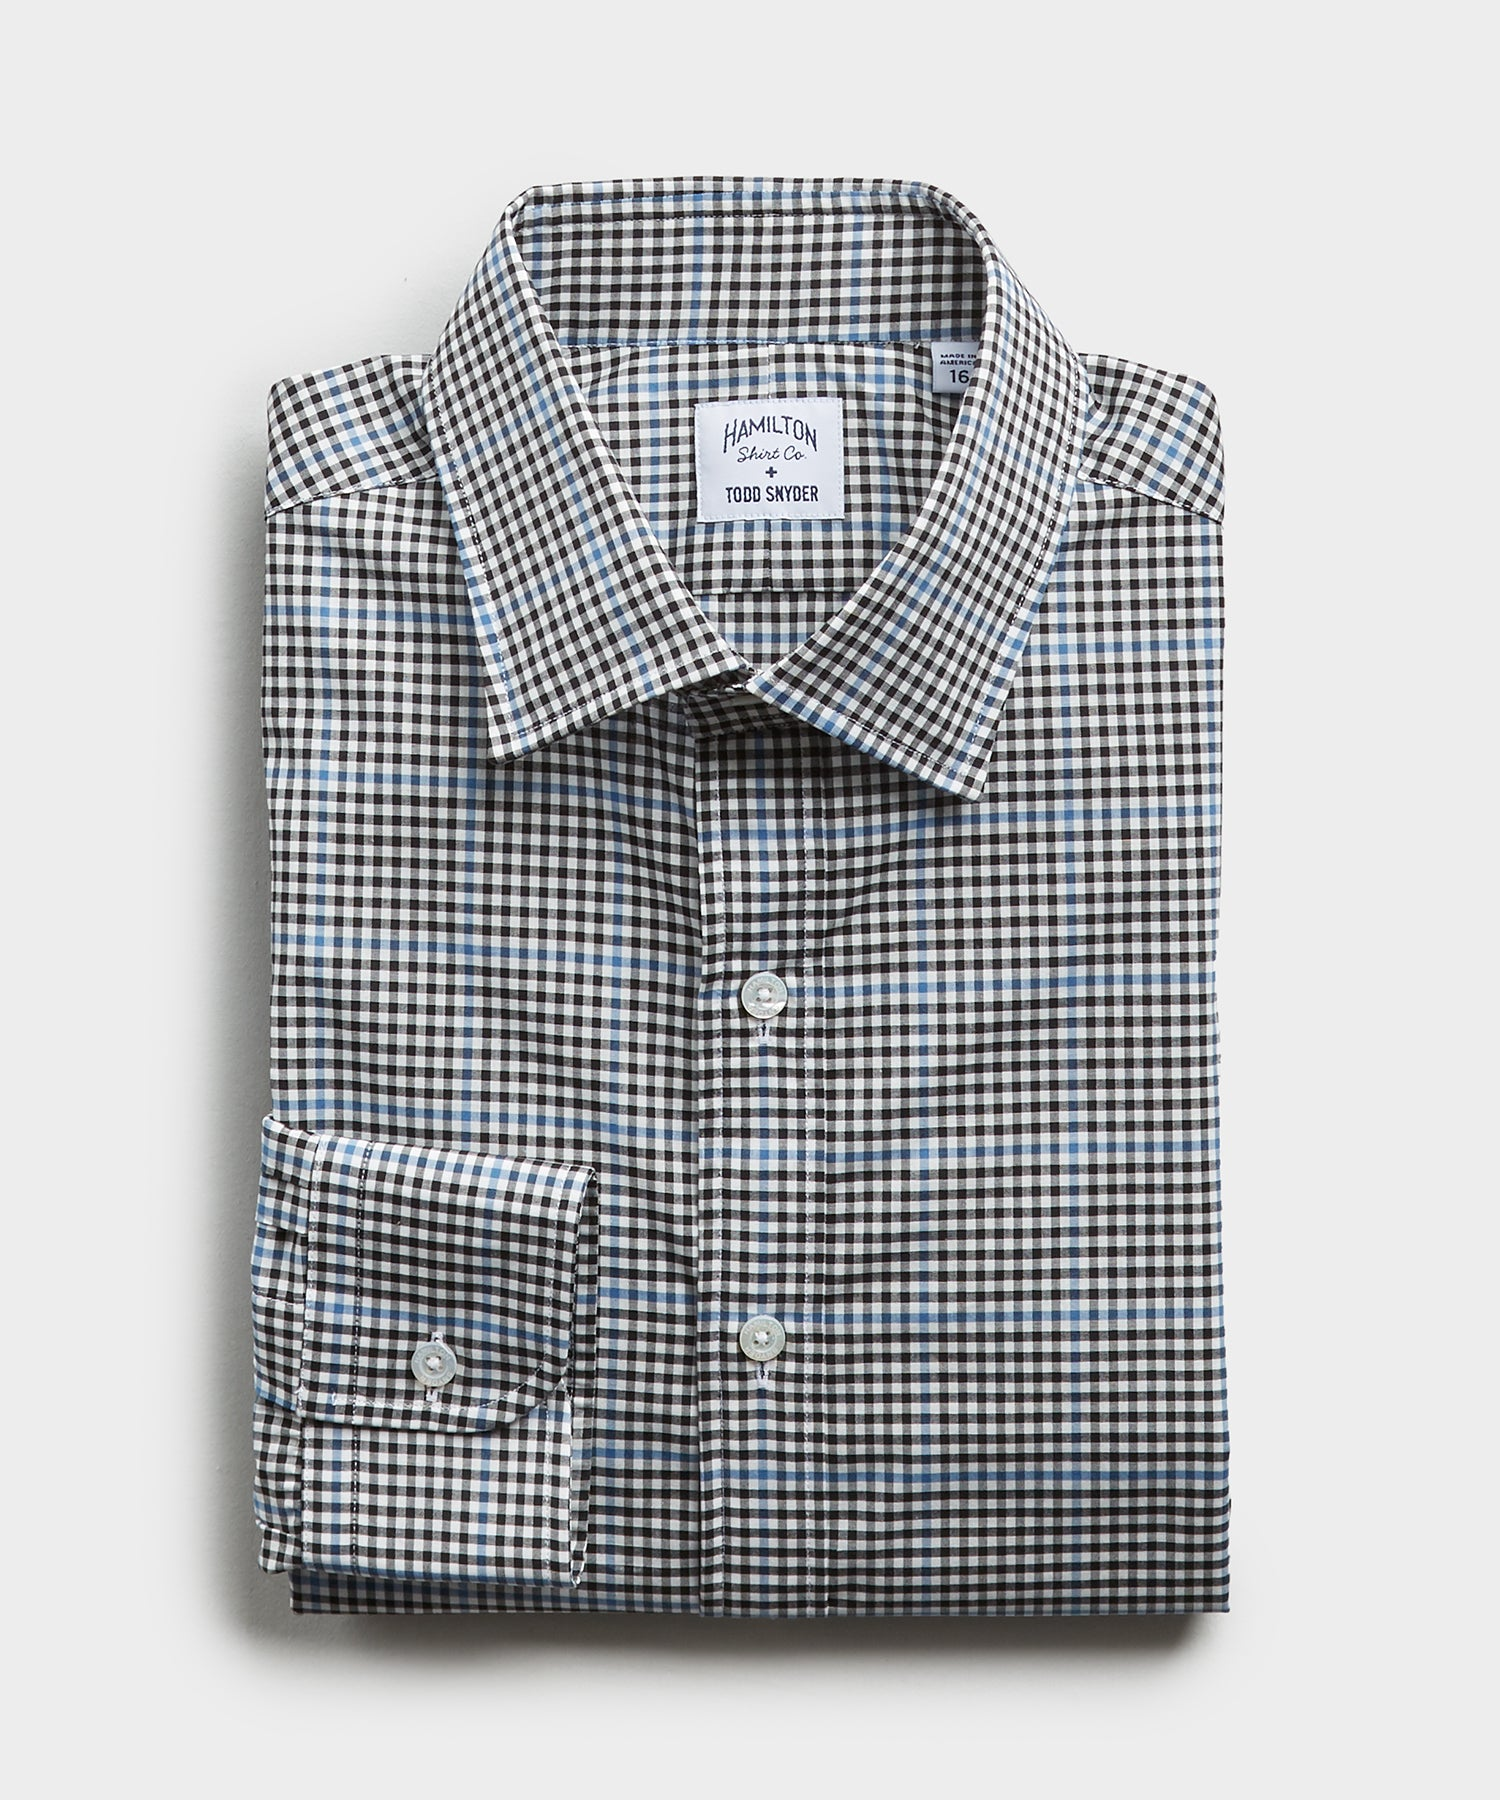 Made in the USA Hamilton + Todd Snyder Plaid Shirt in Black And Blue